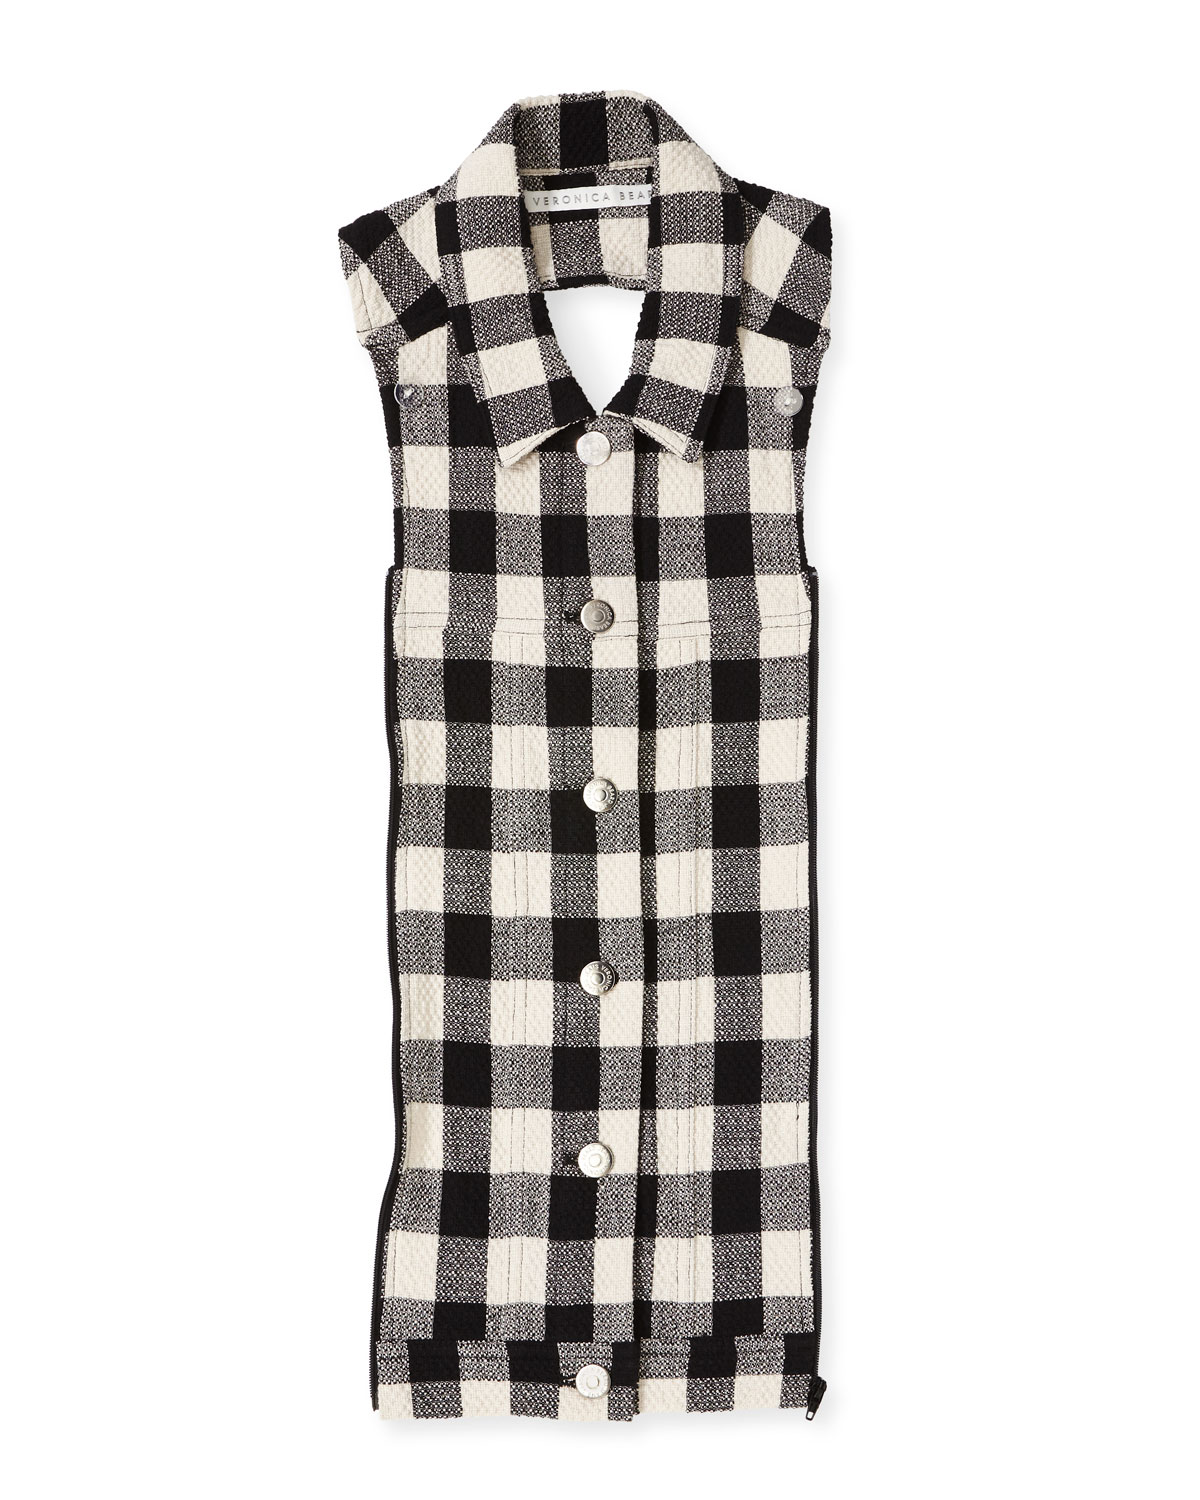 Veronica Beard Tops SLATE GINGHAM BUTTON-FRONT DICKEY